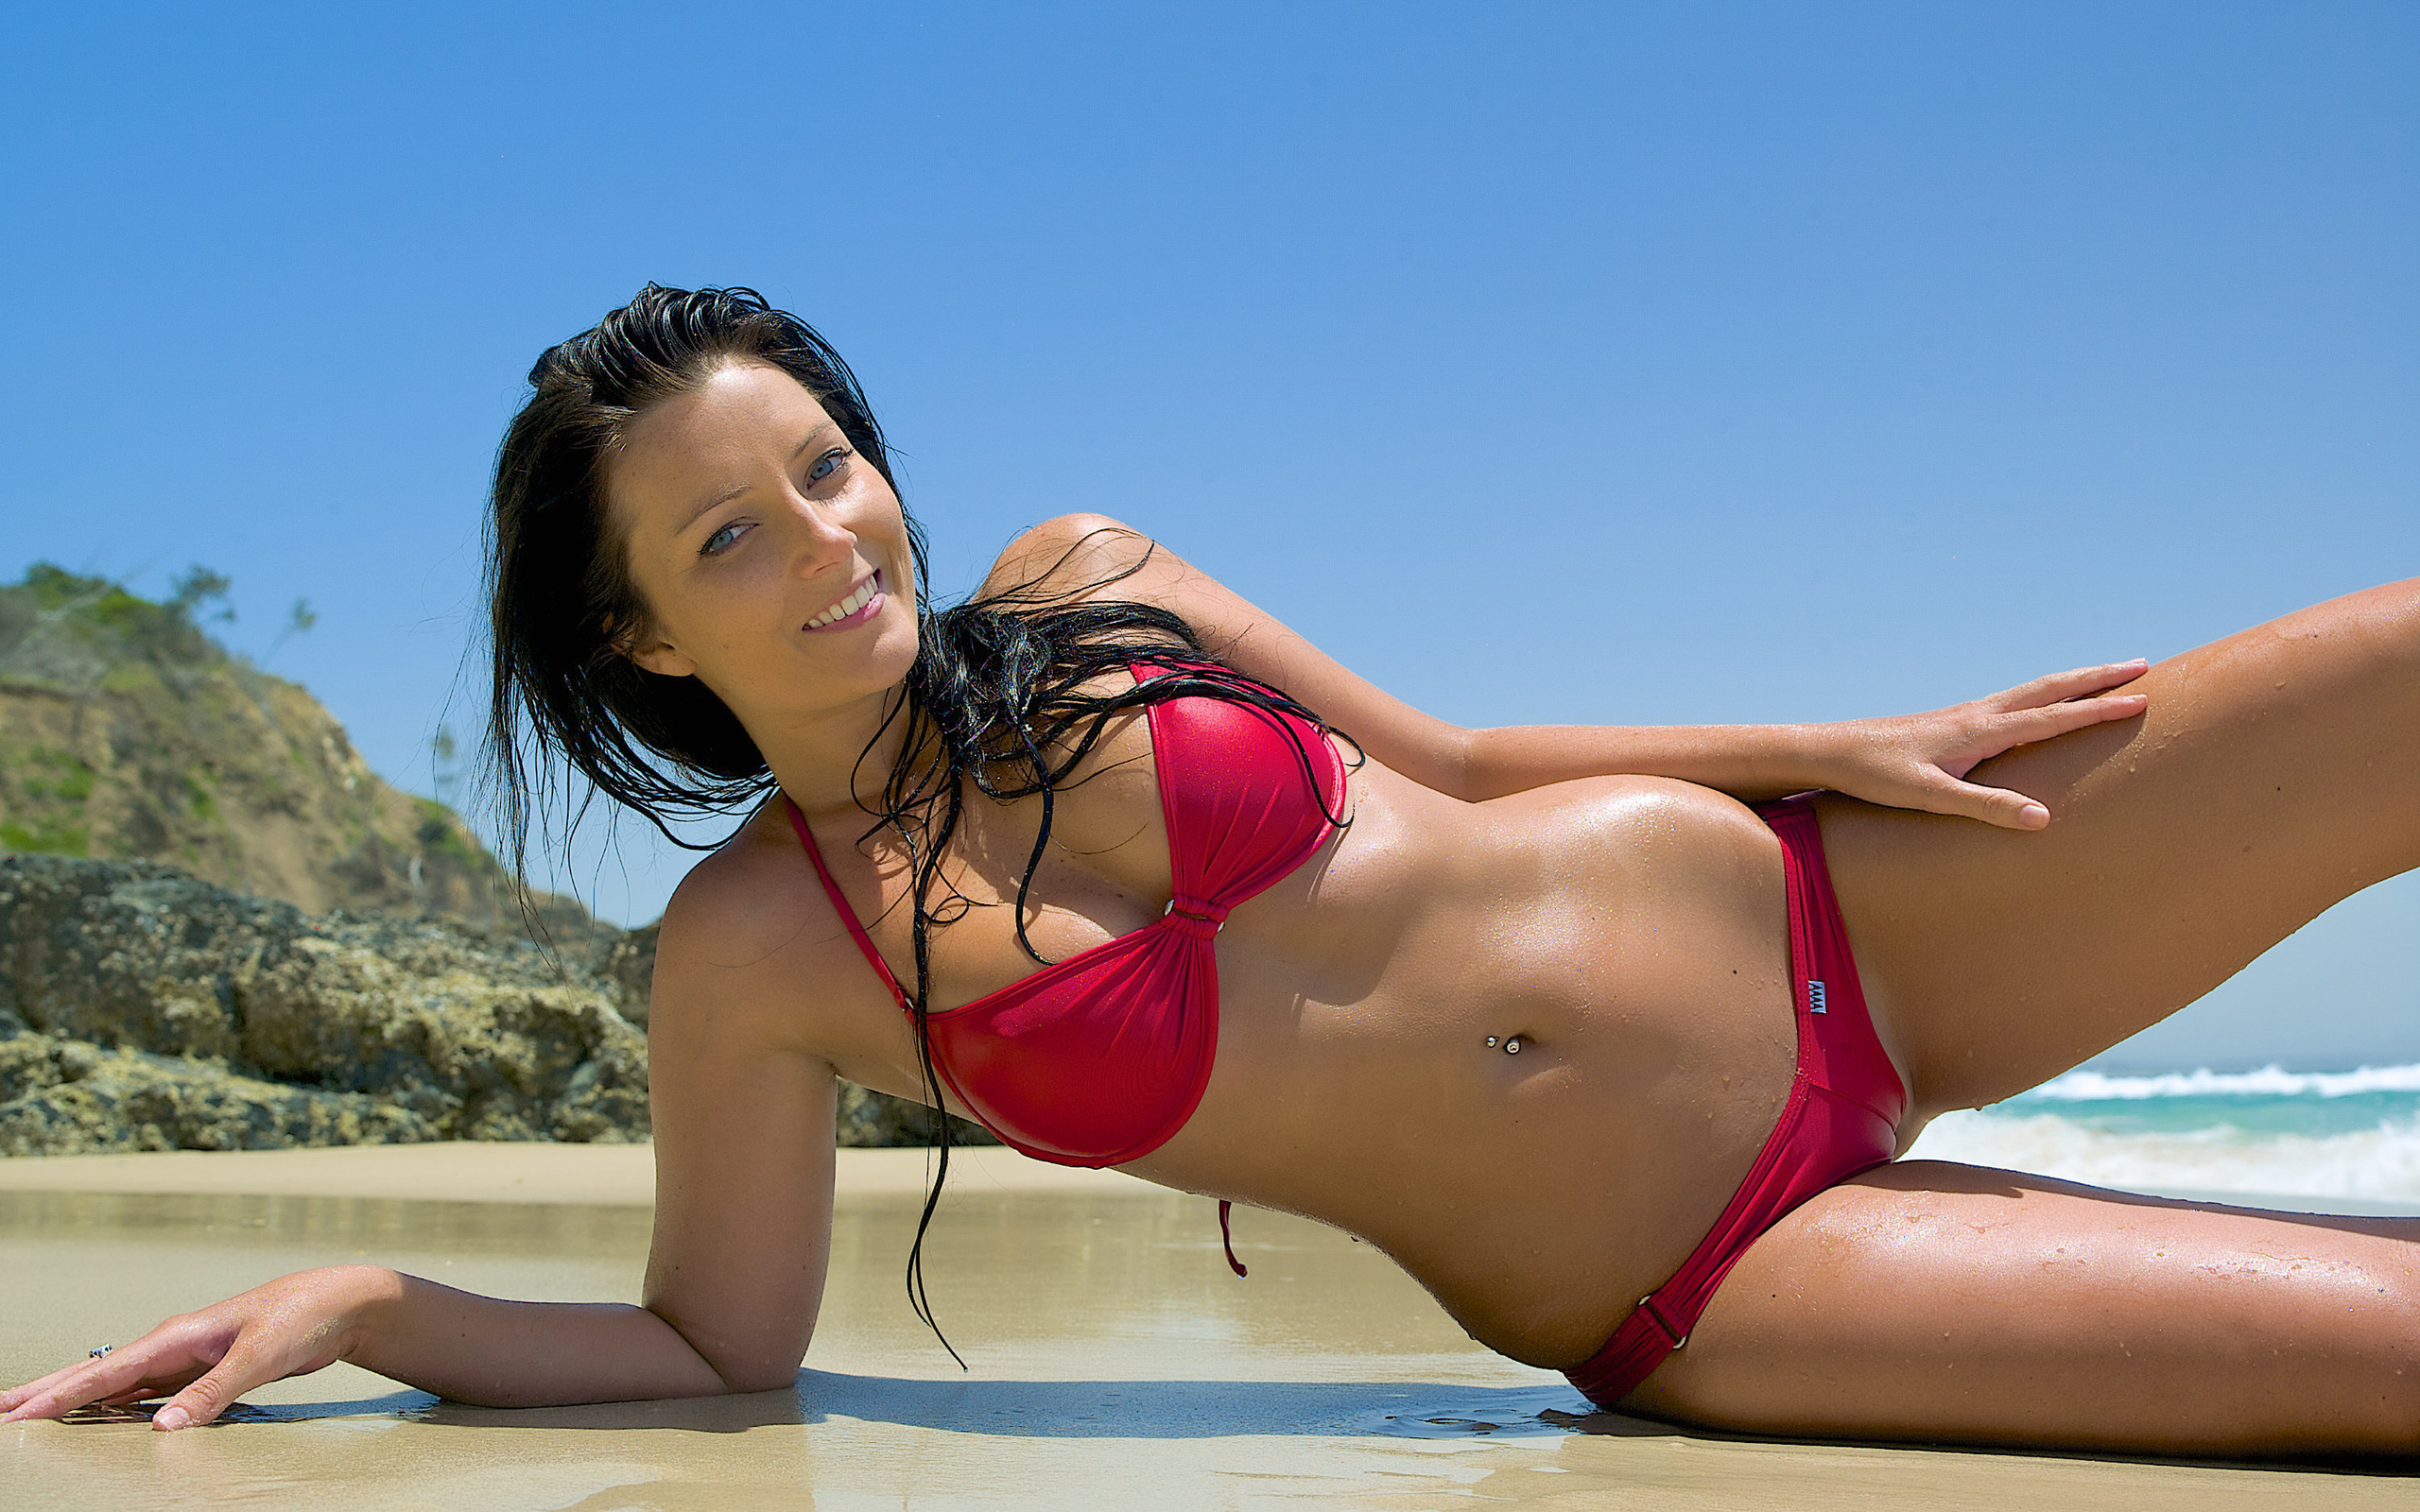 hot-girl-in-bikini-video